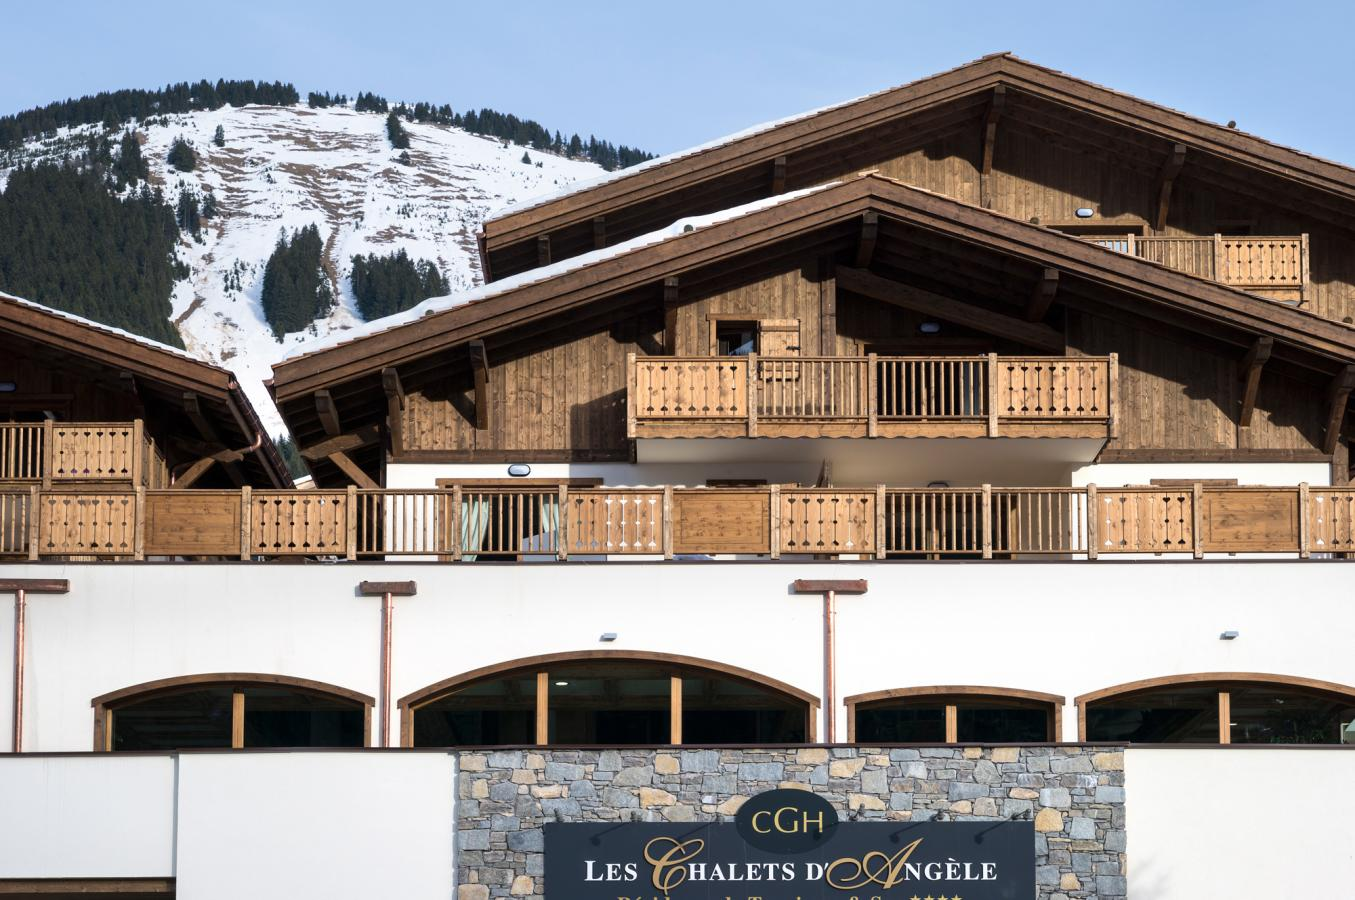 RESIDENCE LES CHALETS D'ANGELE